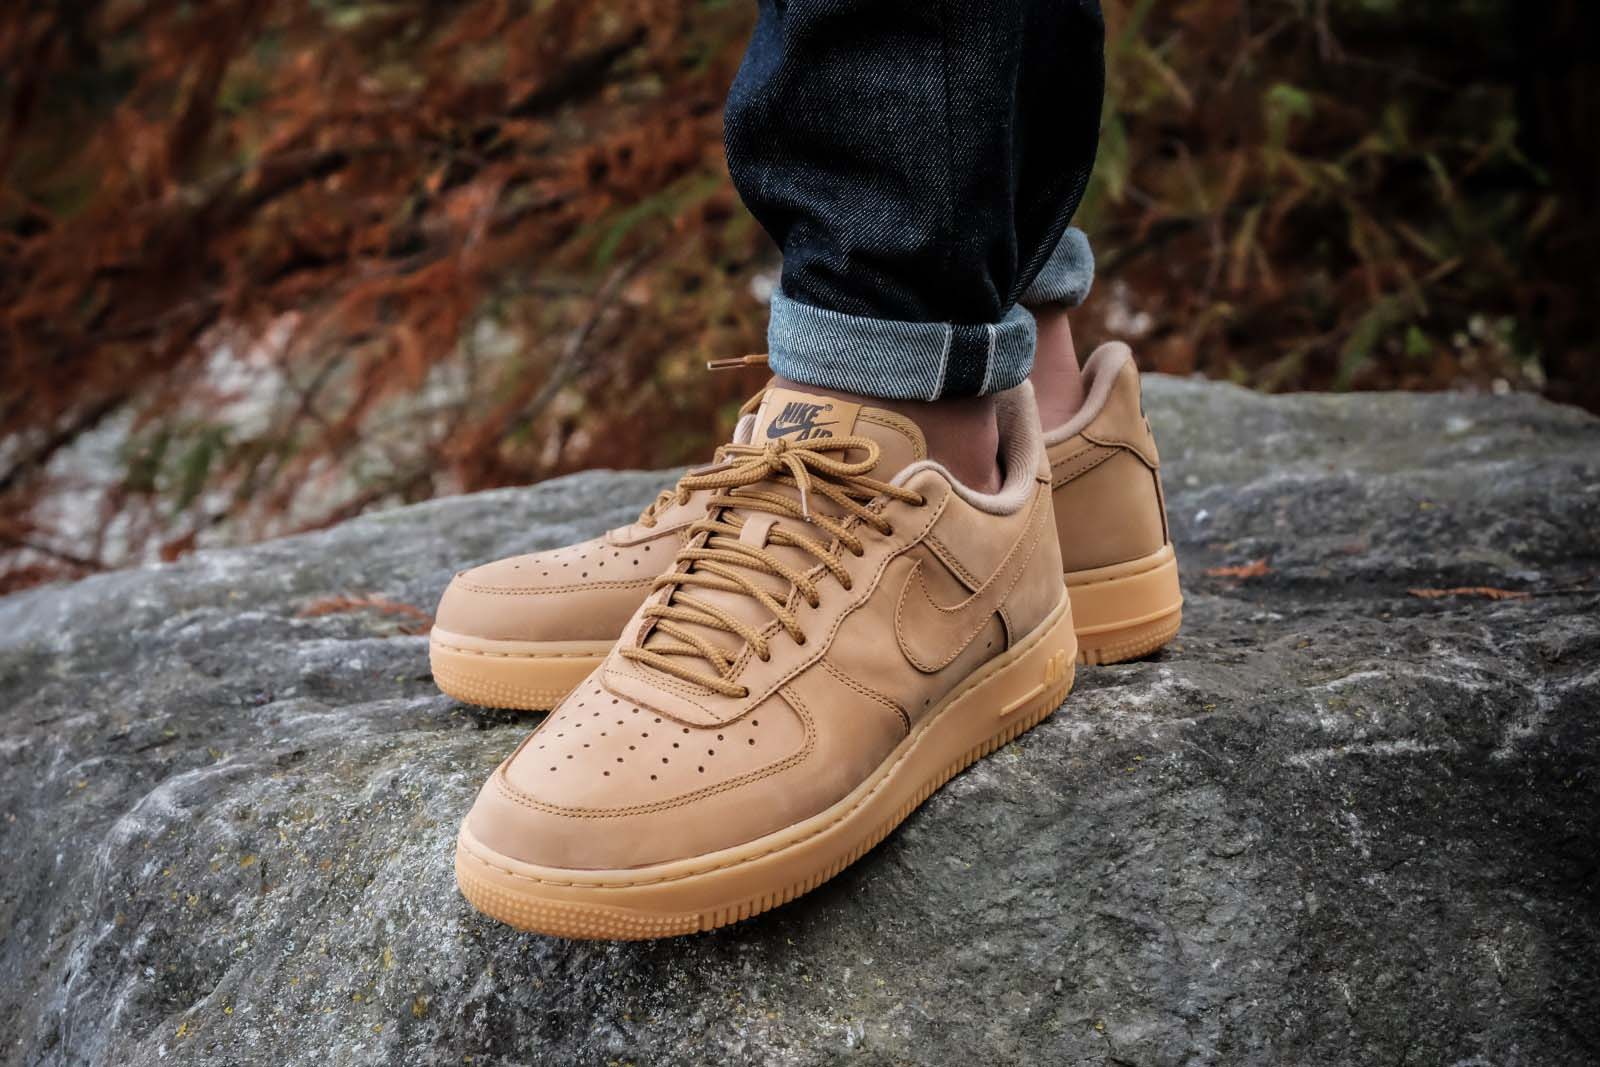 Winter Ready Nike Air Force 1 'Flax